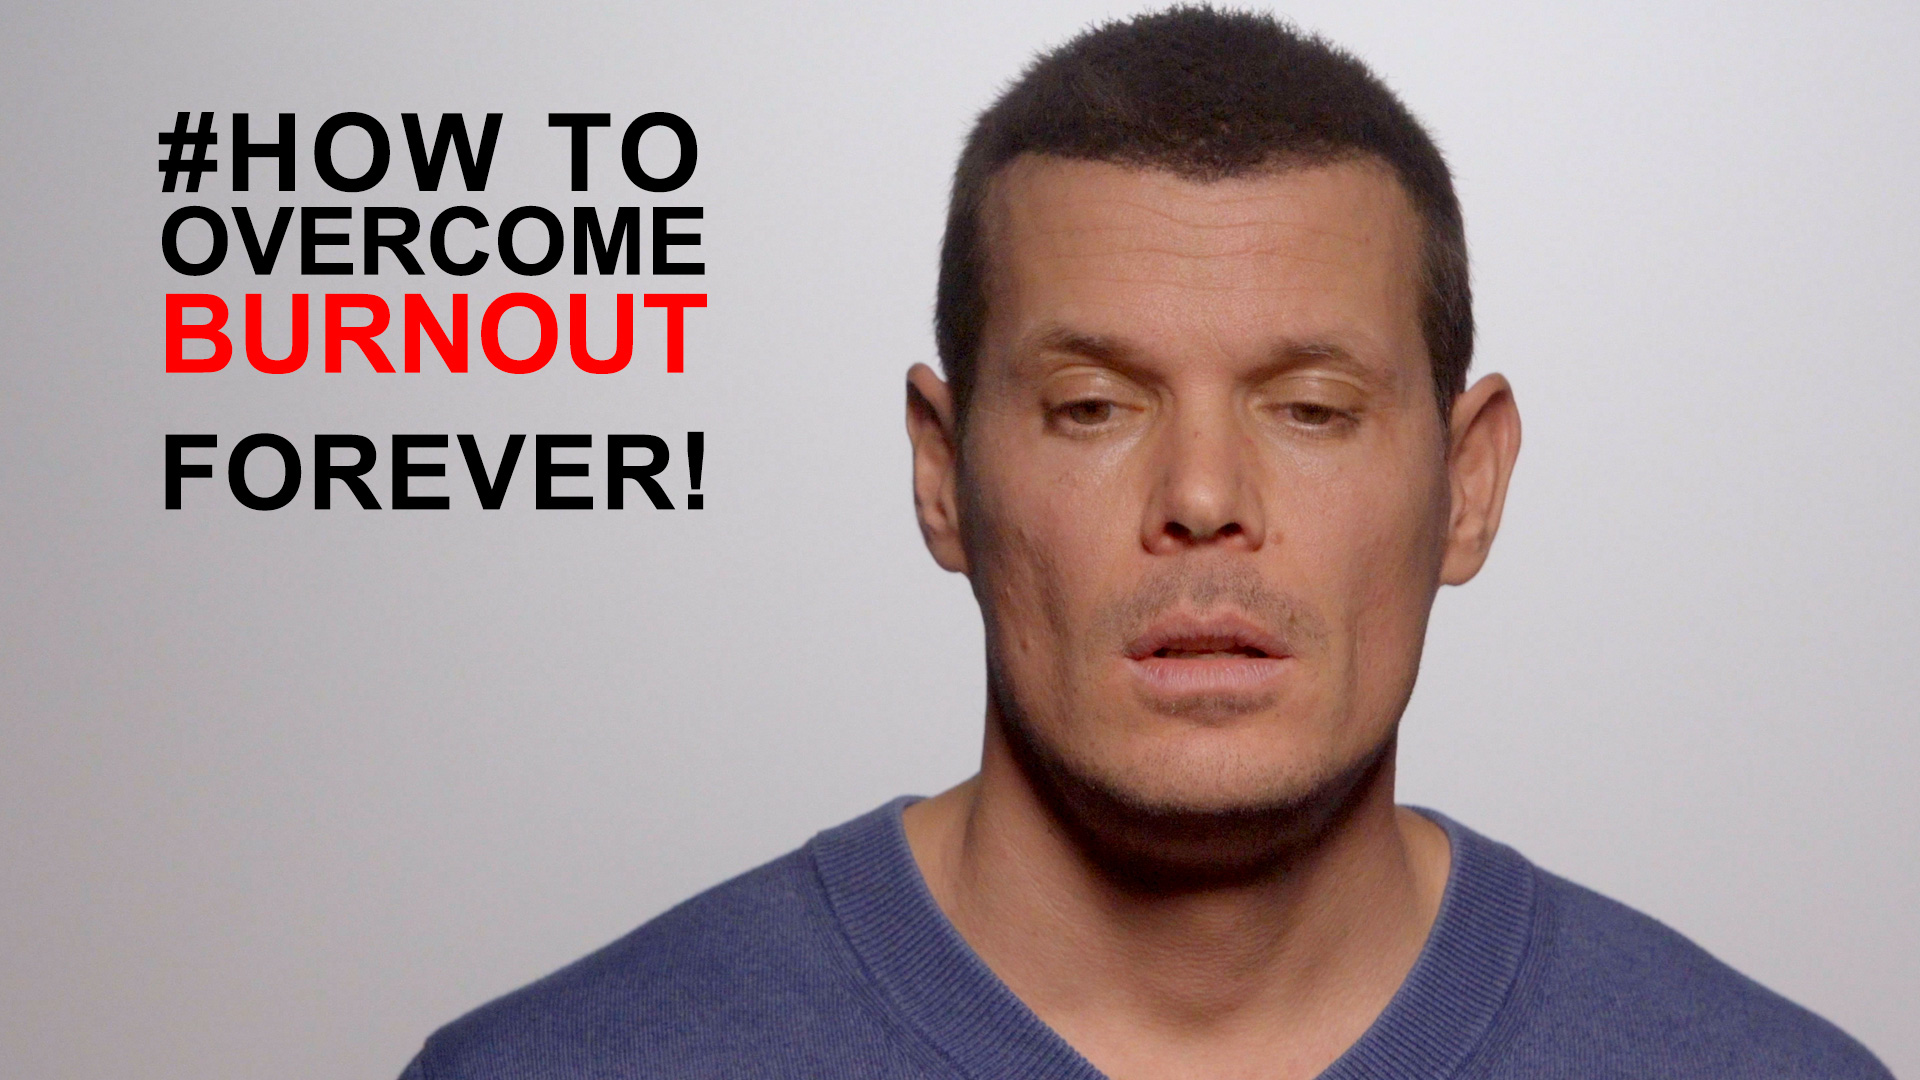 How to overcome a burnout FOREVER: #1 Tip to stop a burnout syndrome forever